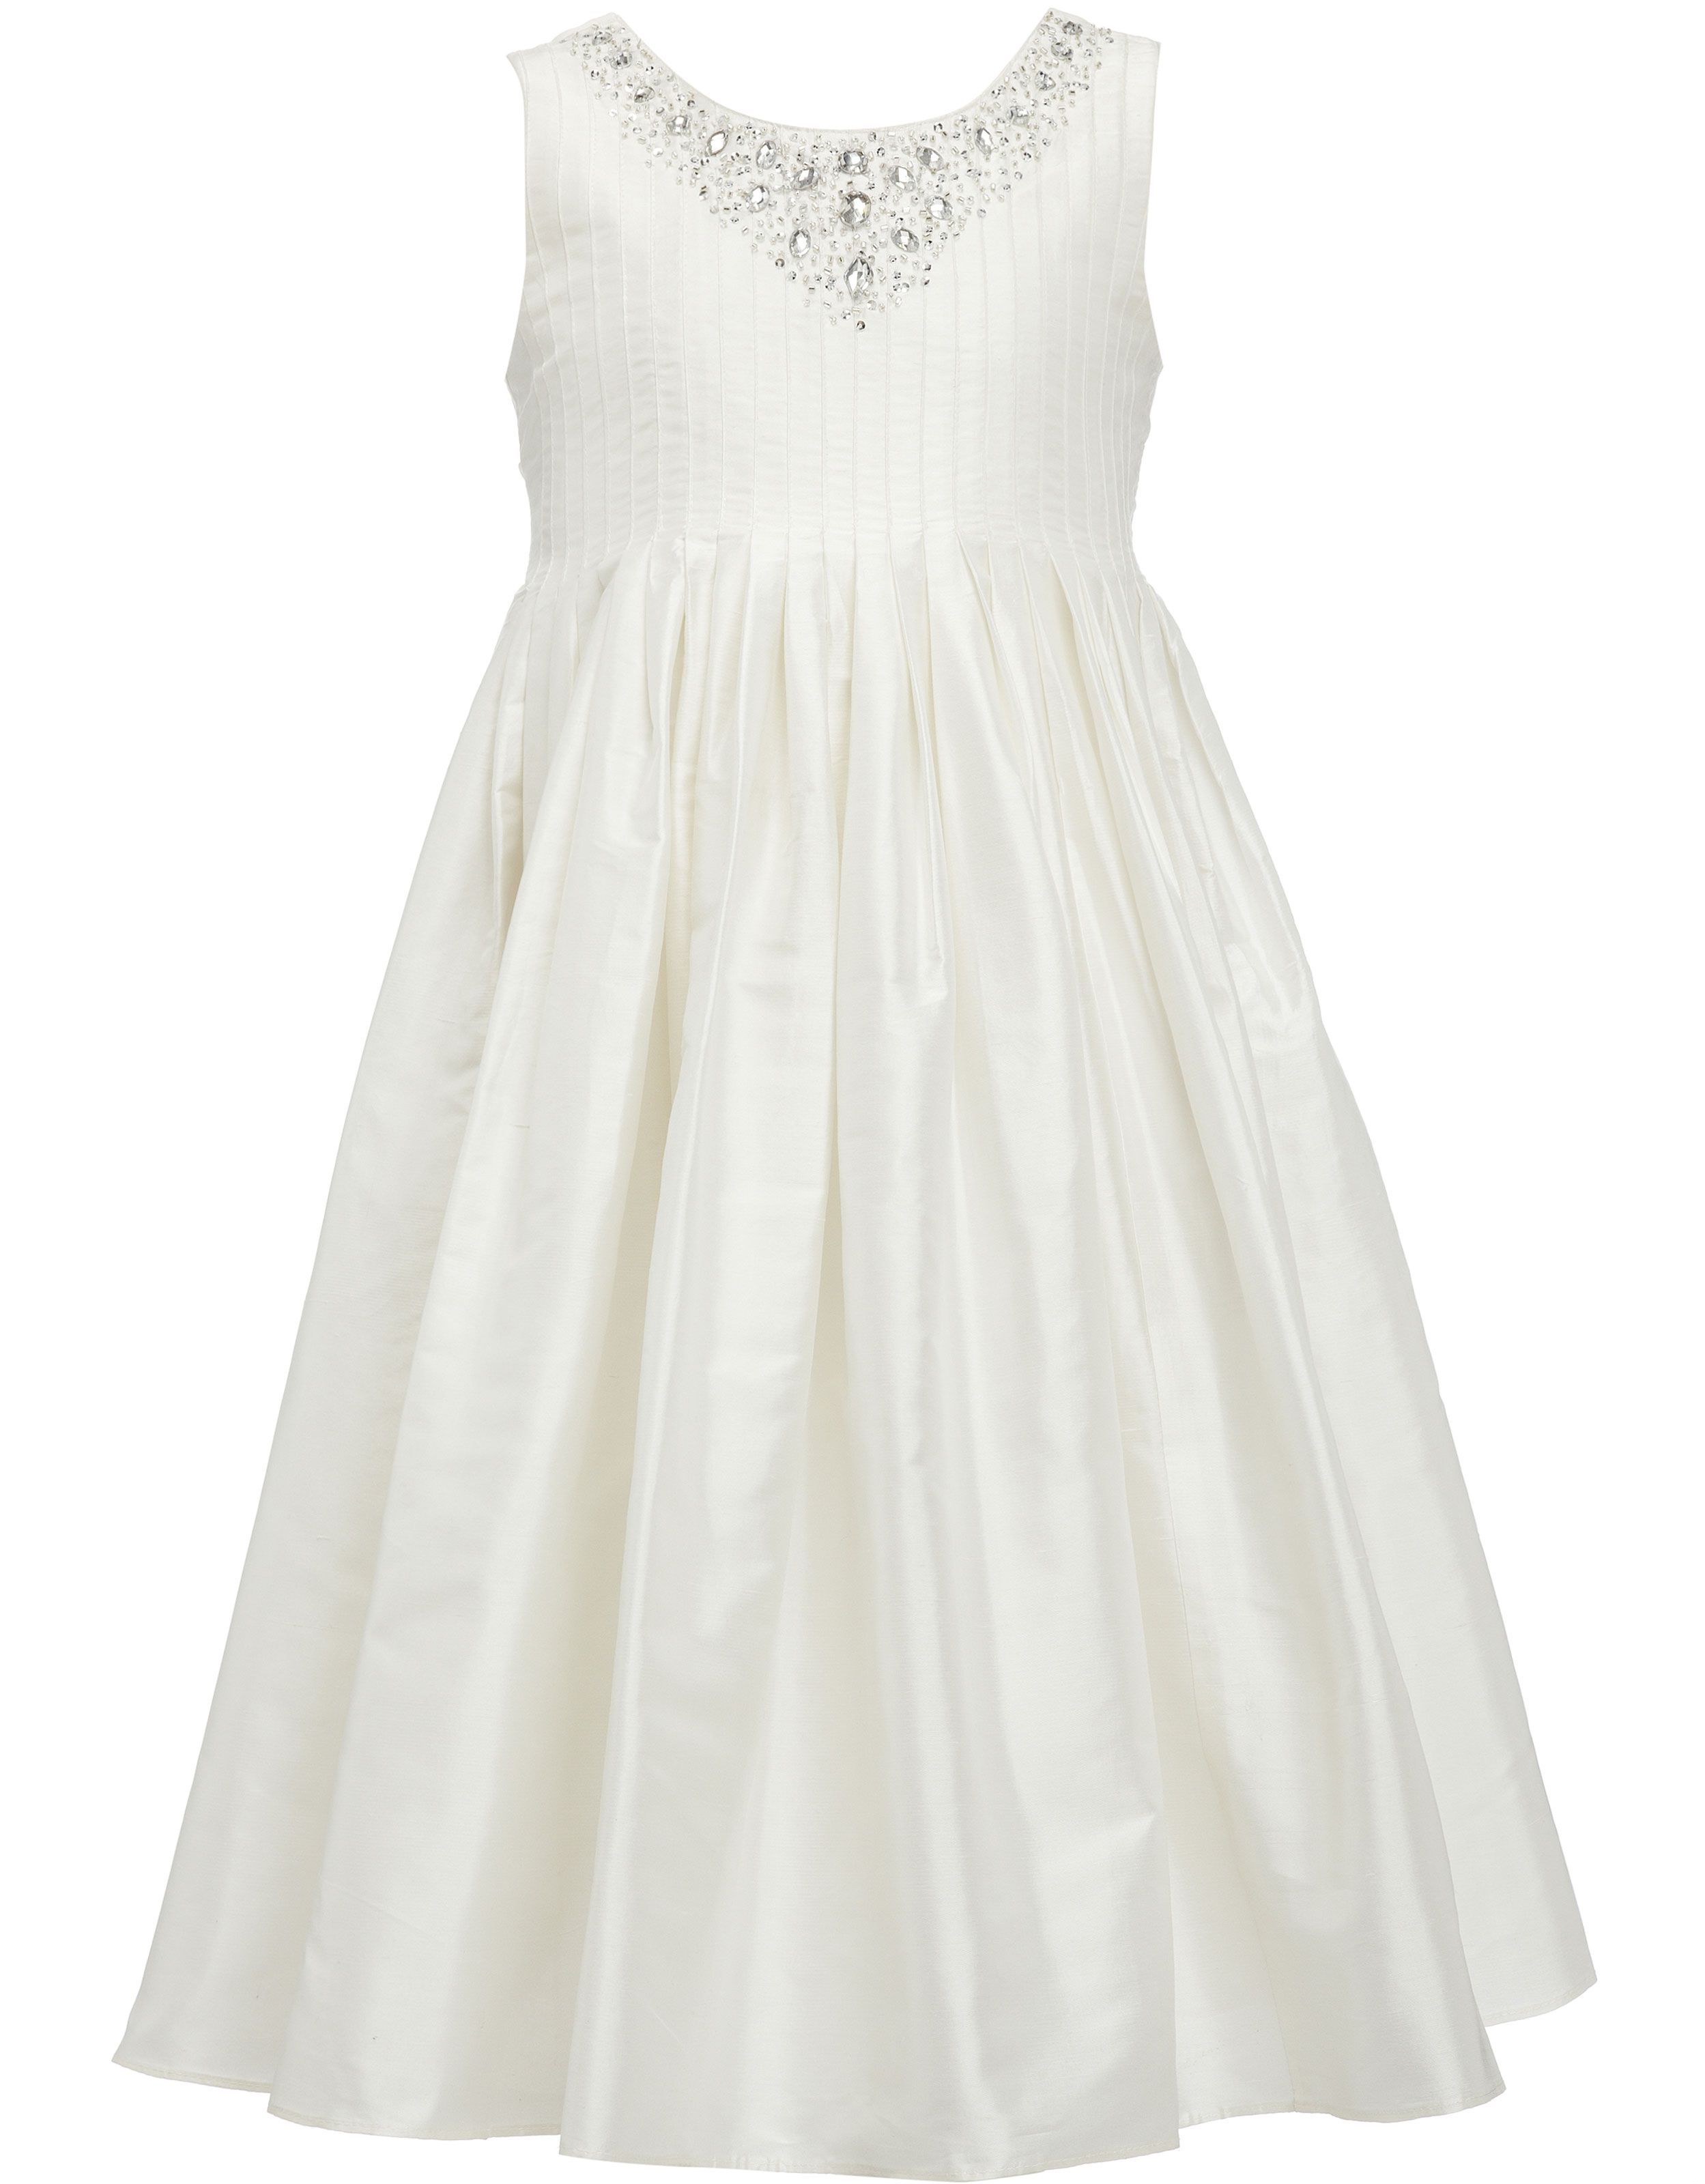 Ivory Flower Girl Dress On Sale For 30 Only In Stock